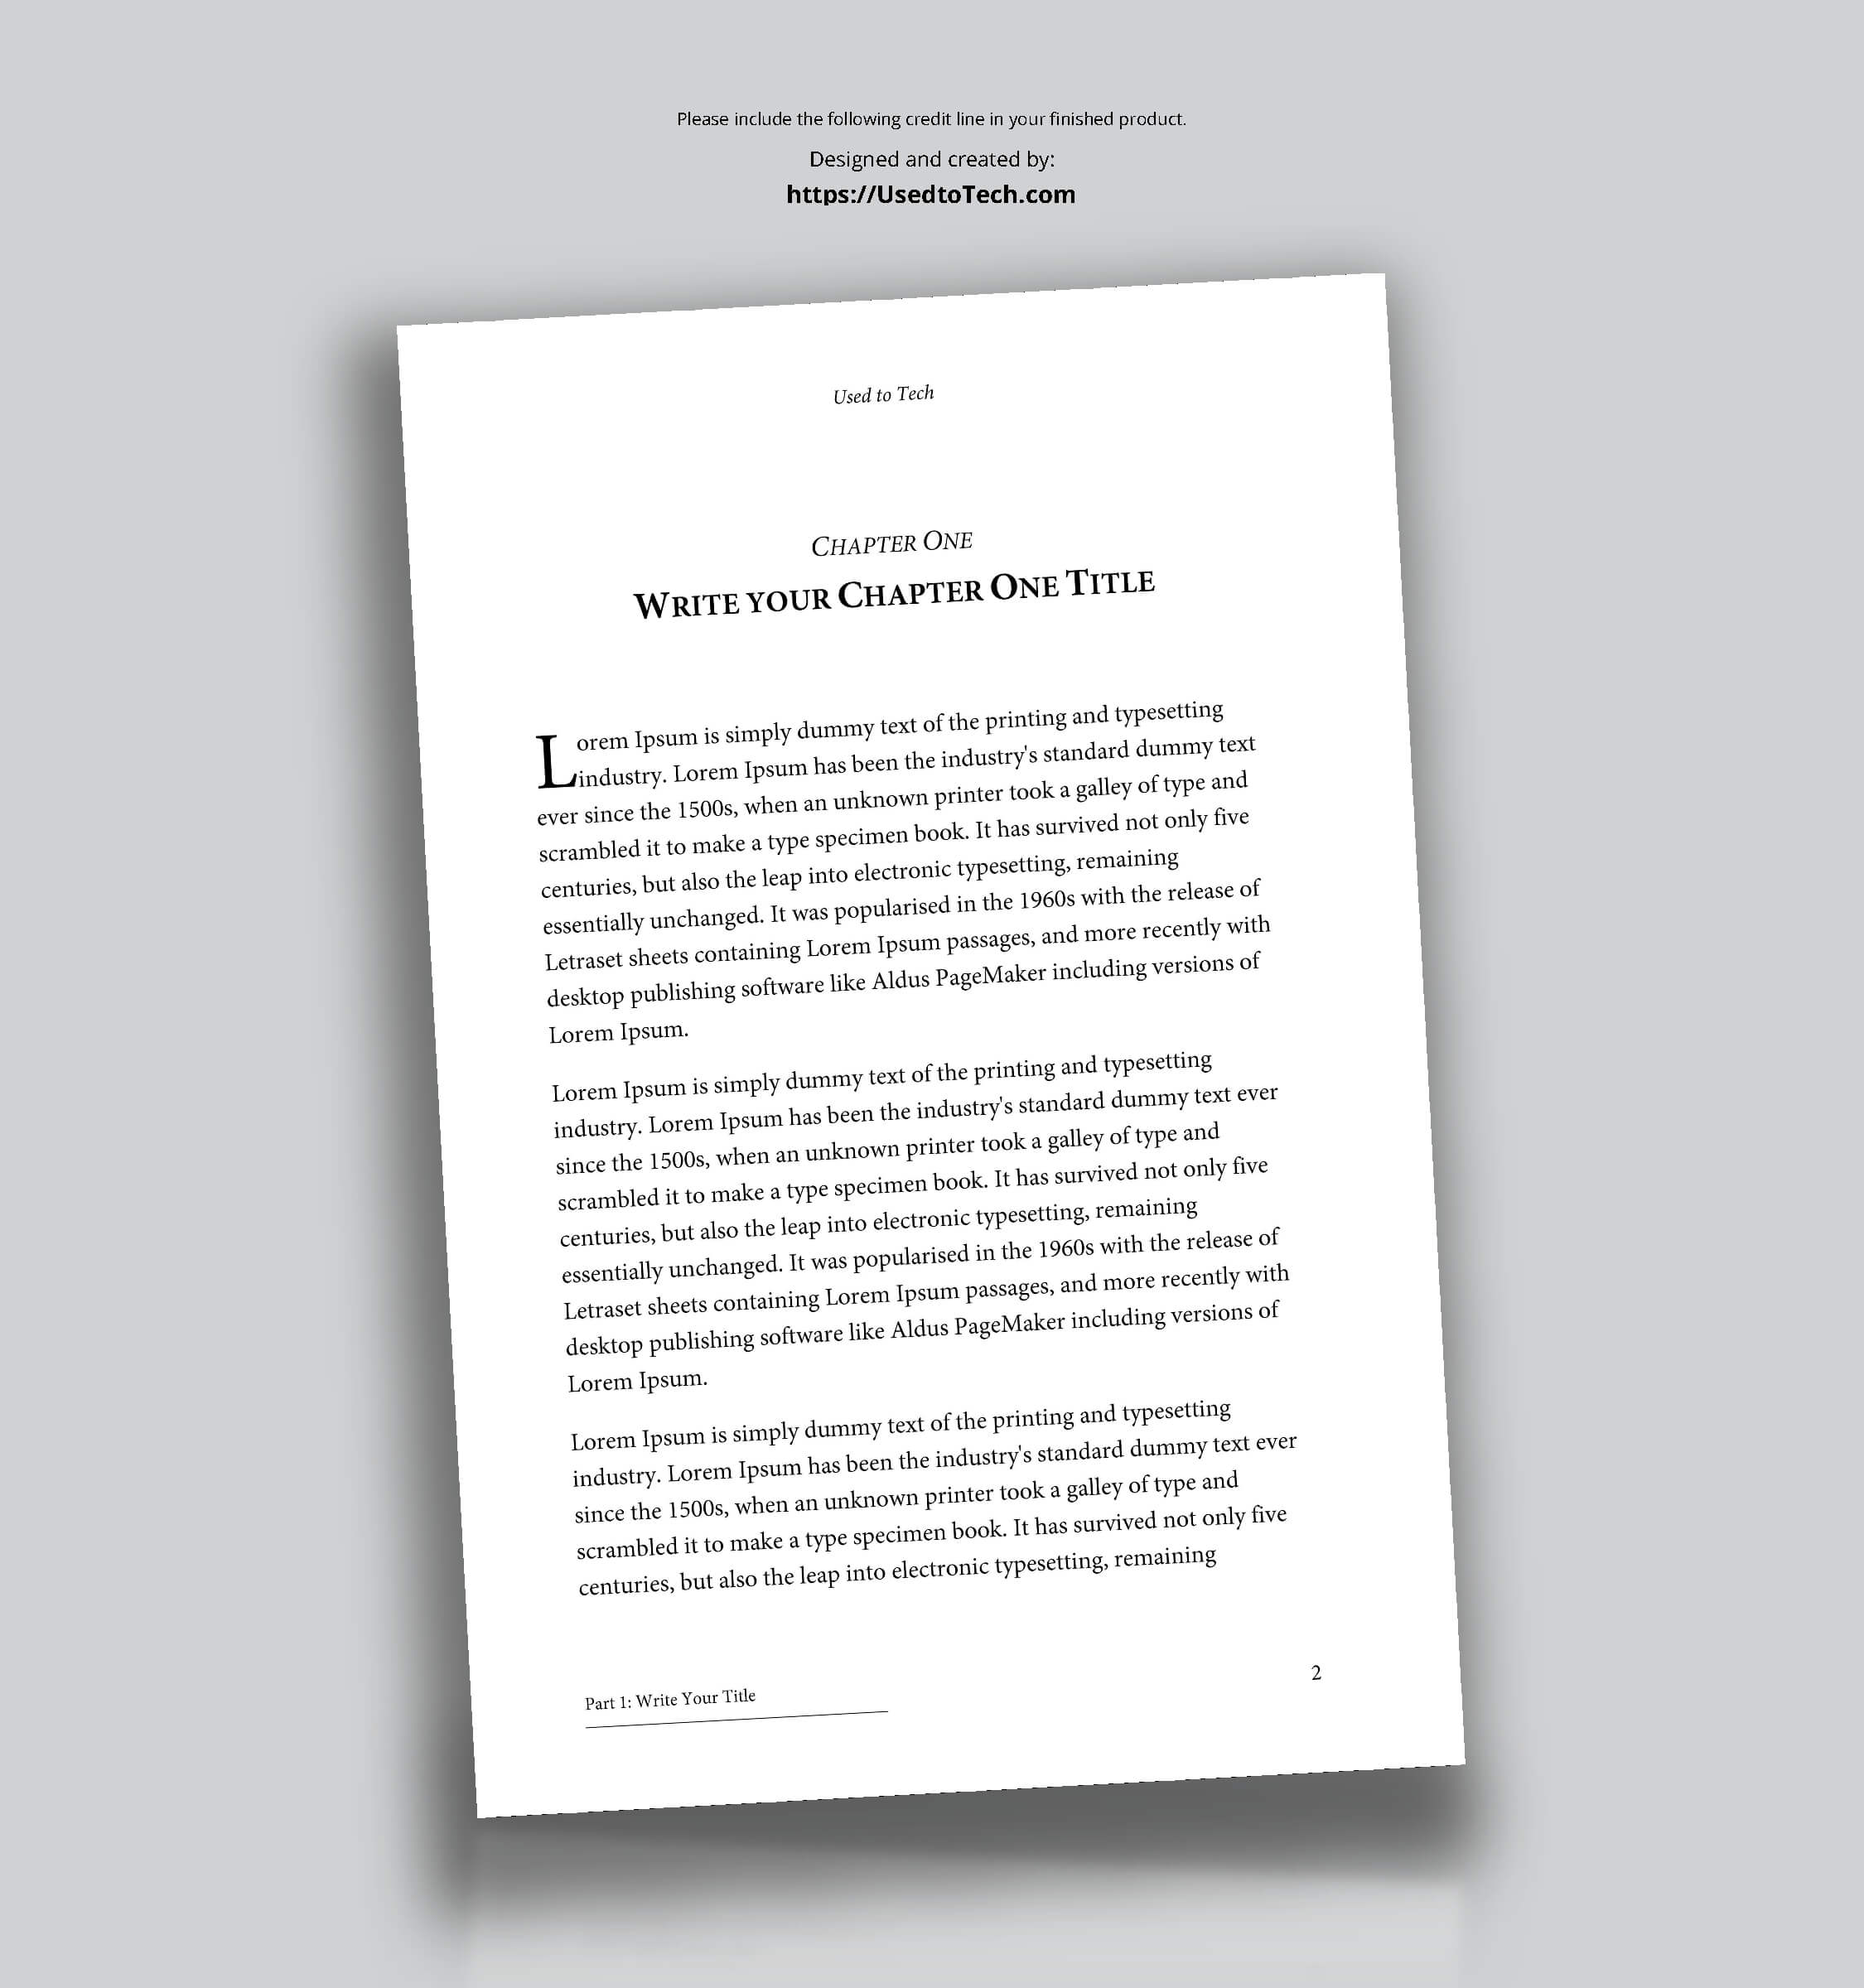 Professional-Looking Book Template For Word, Free - Used To Tech inside 6X9 Book Template For Word